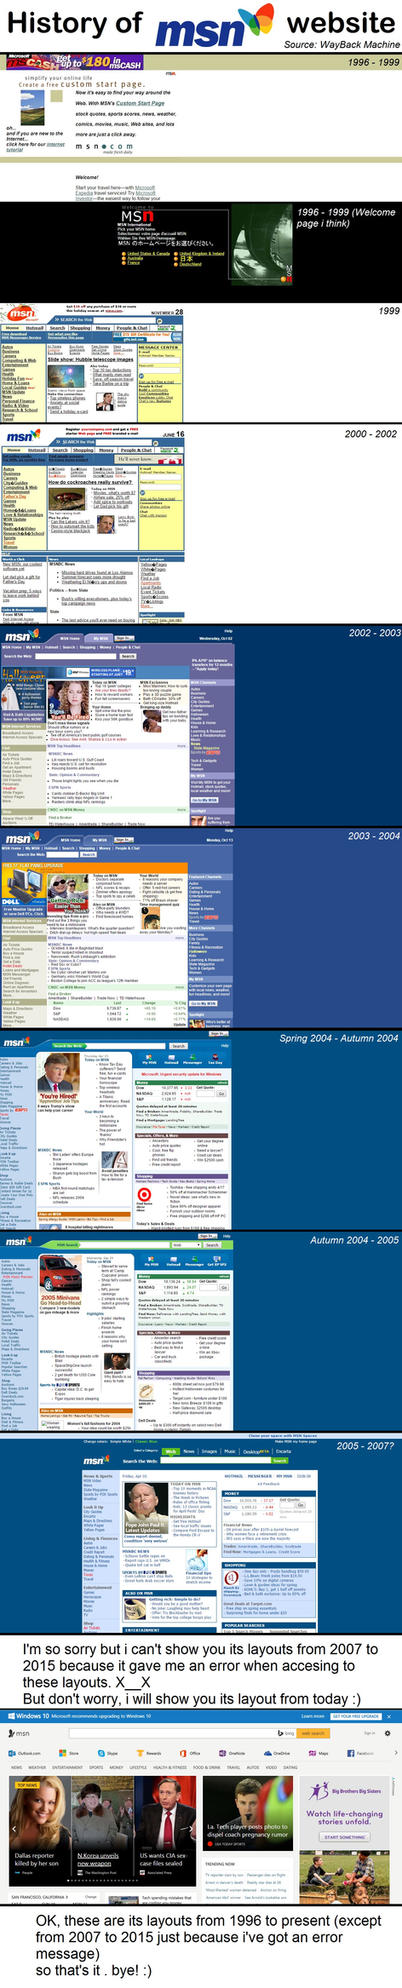 History of msn website (1996 - 2016) by MCDoggy888